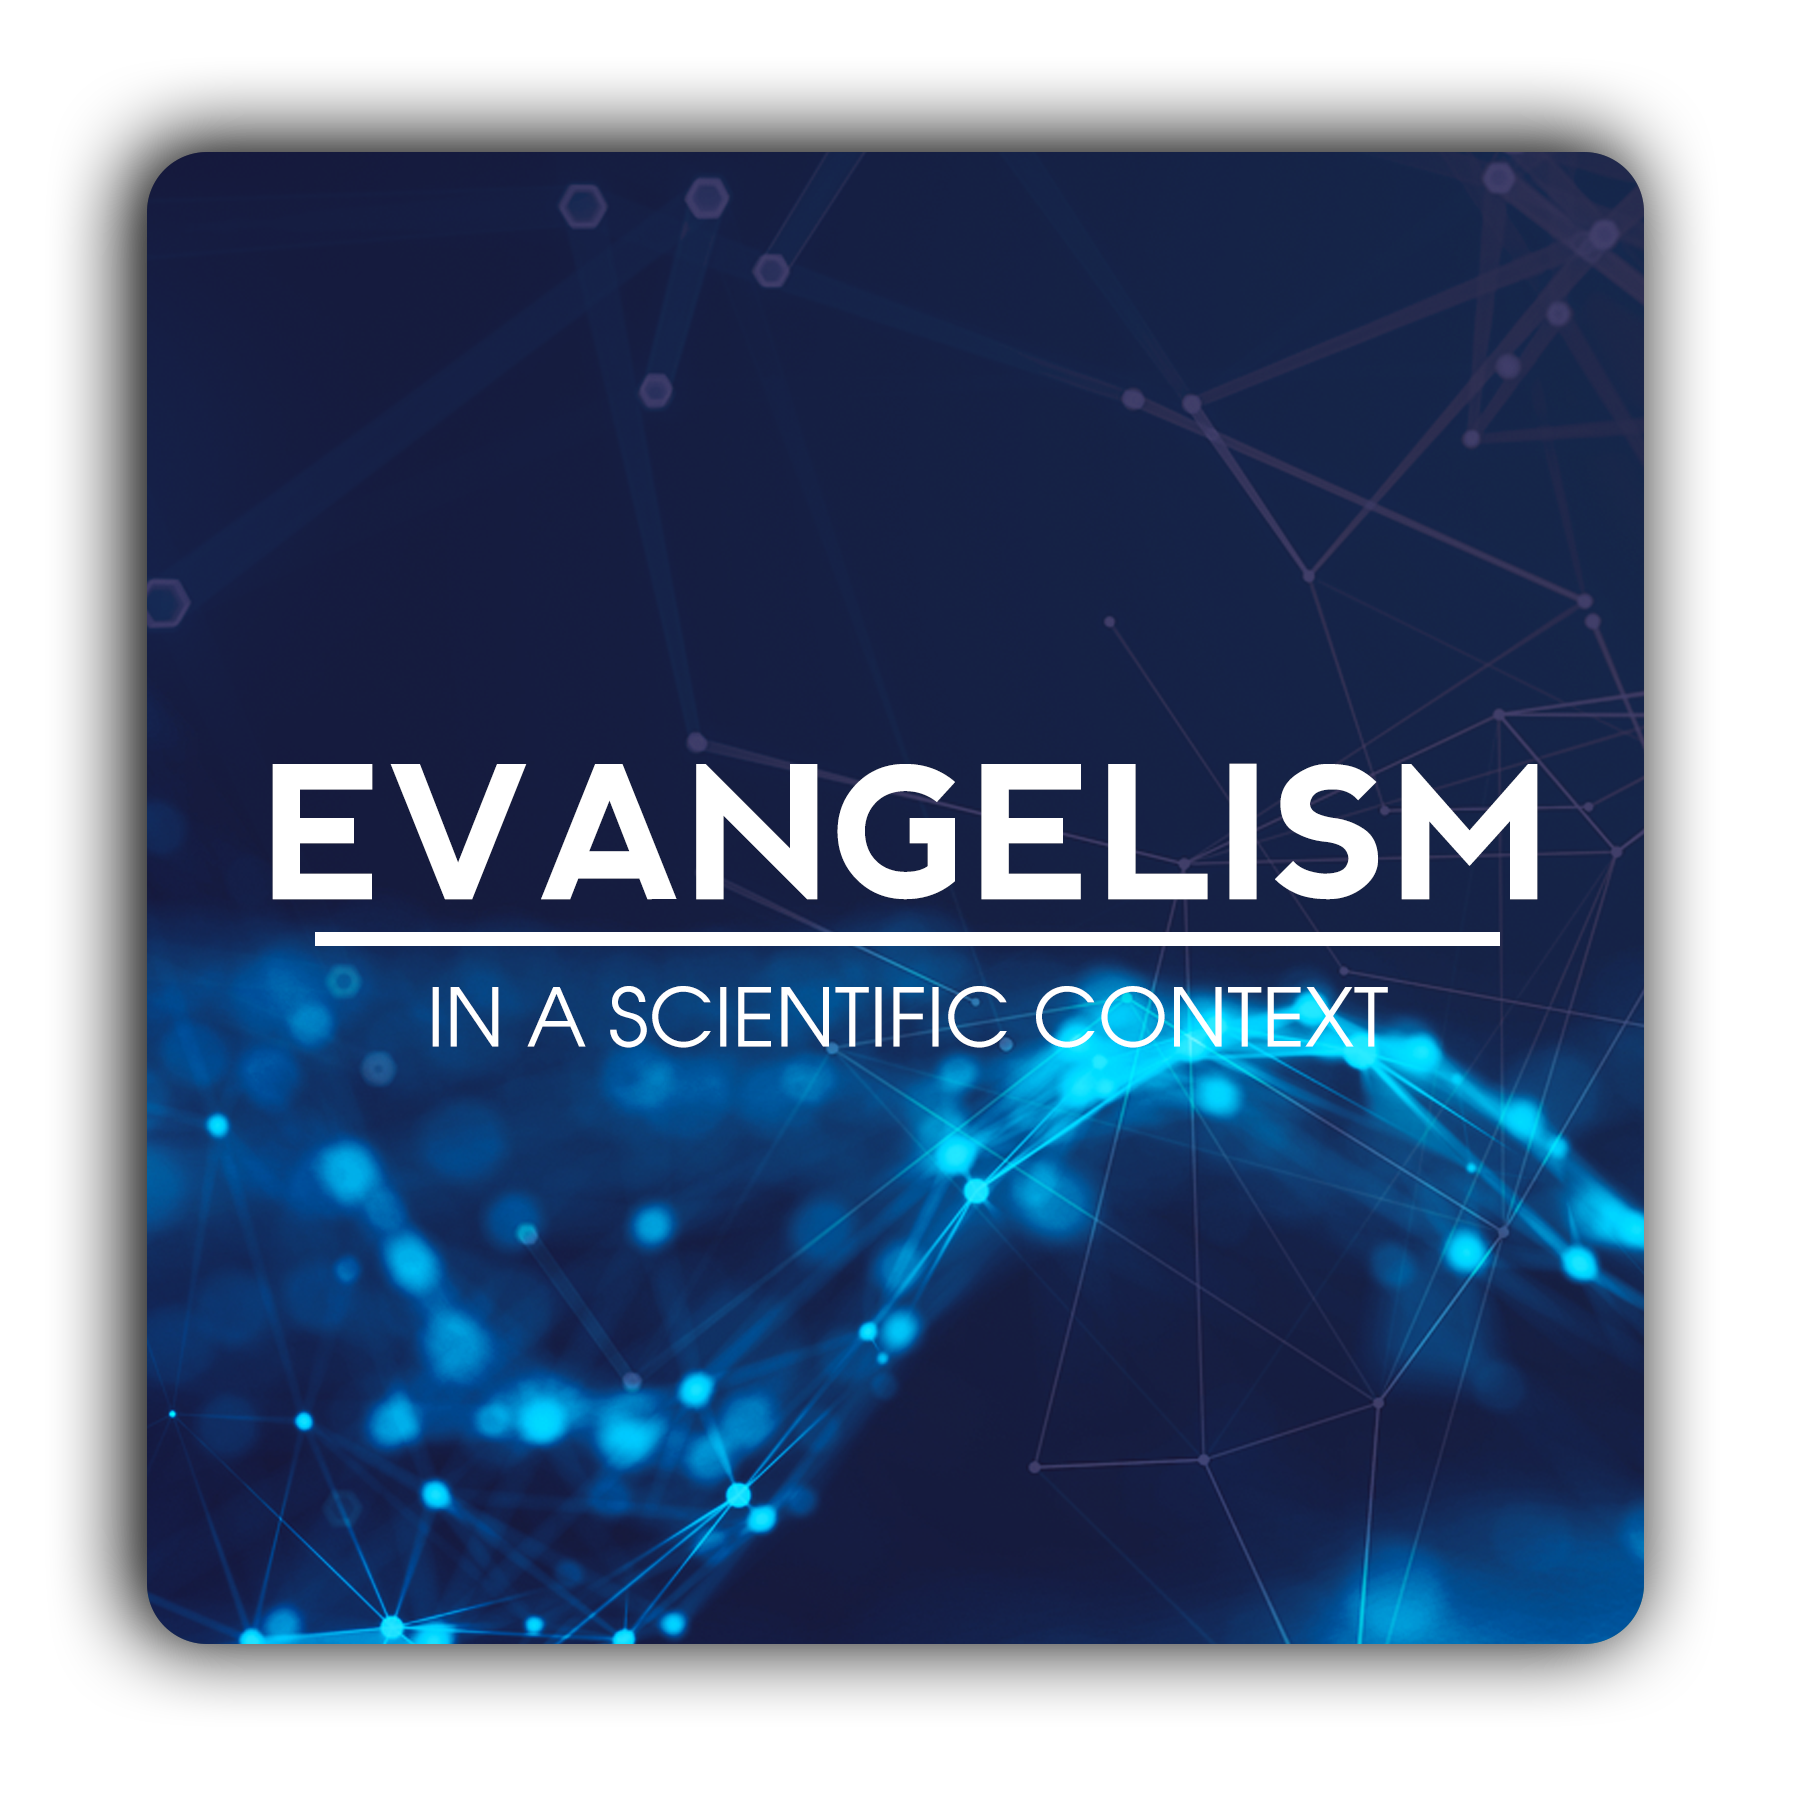 Evangelism in a Scientific Context (AUDIT) Image